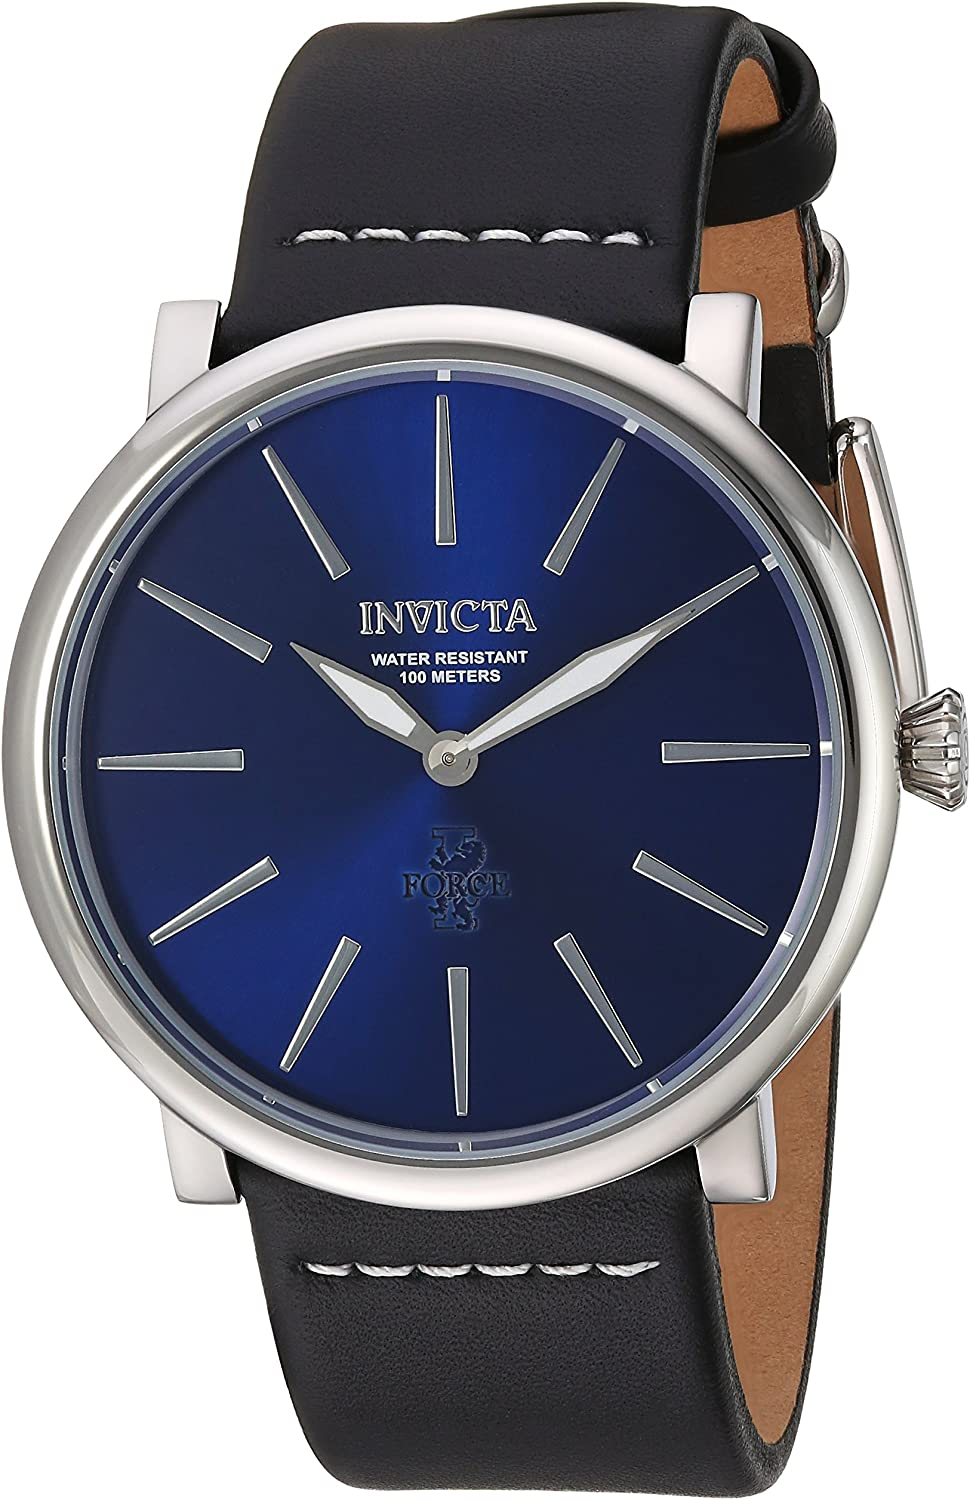 Invicta Men s I- I-Force Stainless Steel Quartz Watch with Leather Calfskin Strap, Black, 24 Model 22931